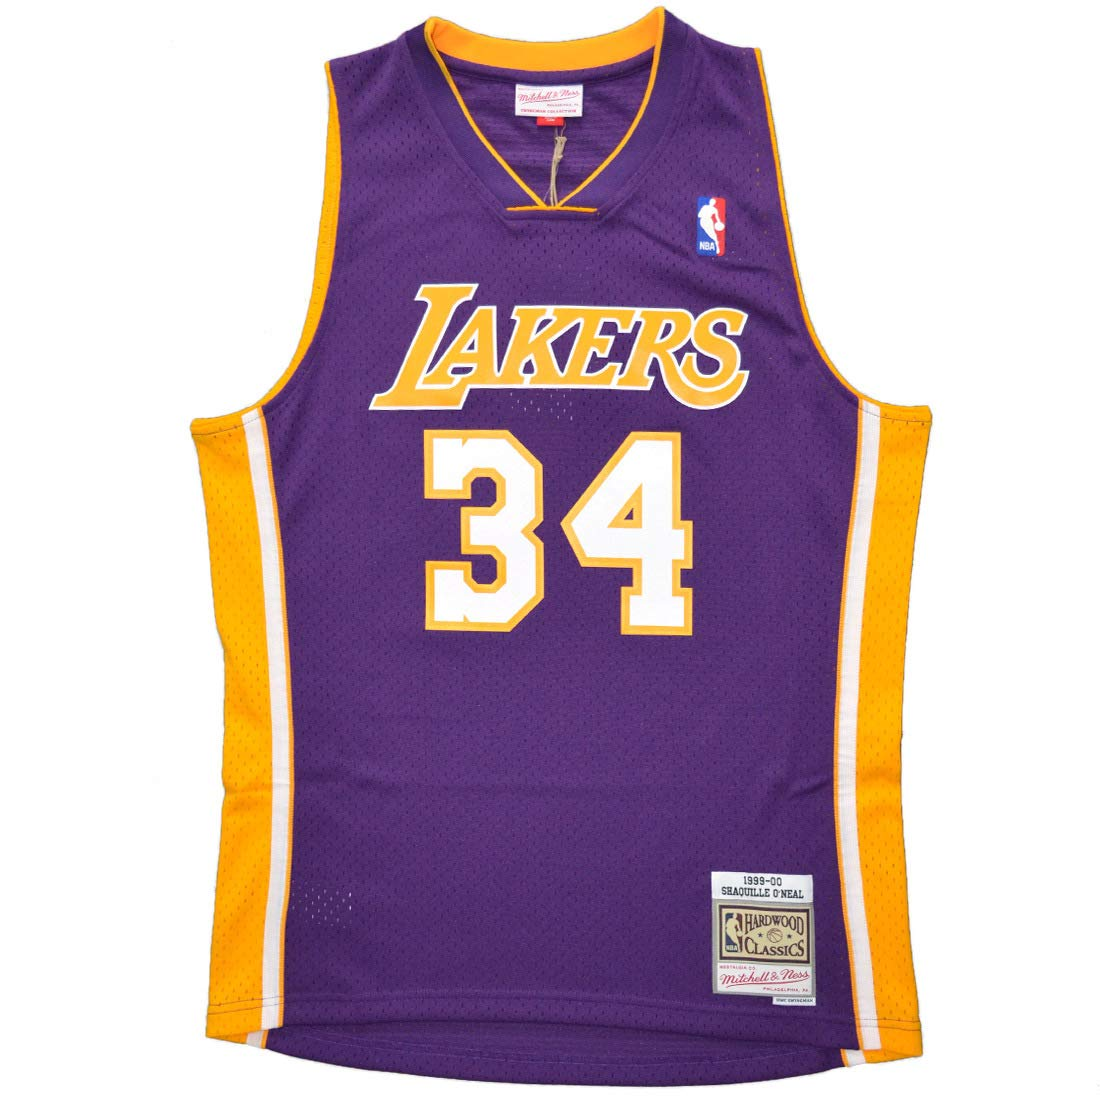 Mitchell /& Ness Swingman Jersey Los Angeles Lakers Shaquille ONeal #34 Purple 99-00